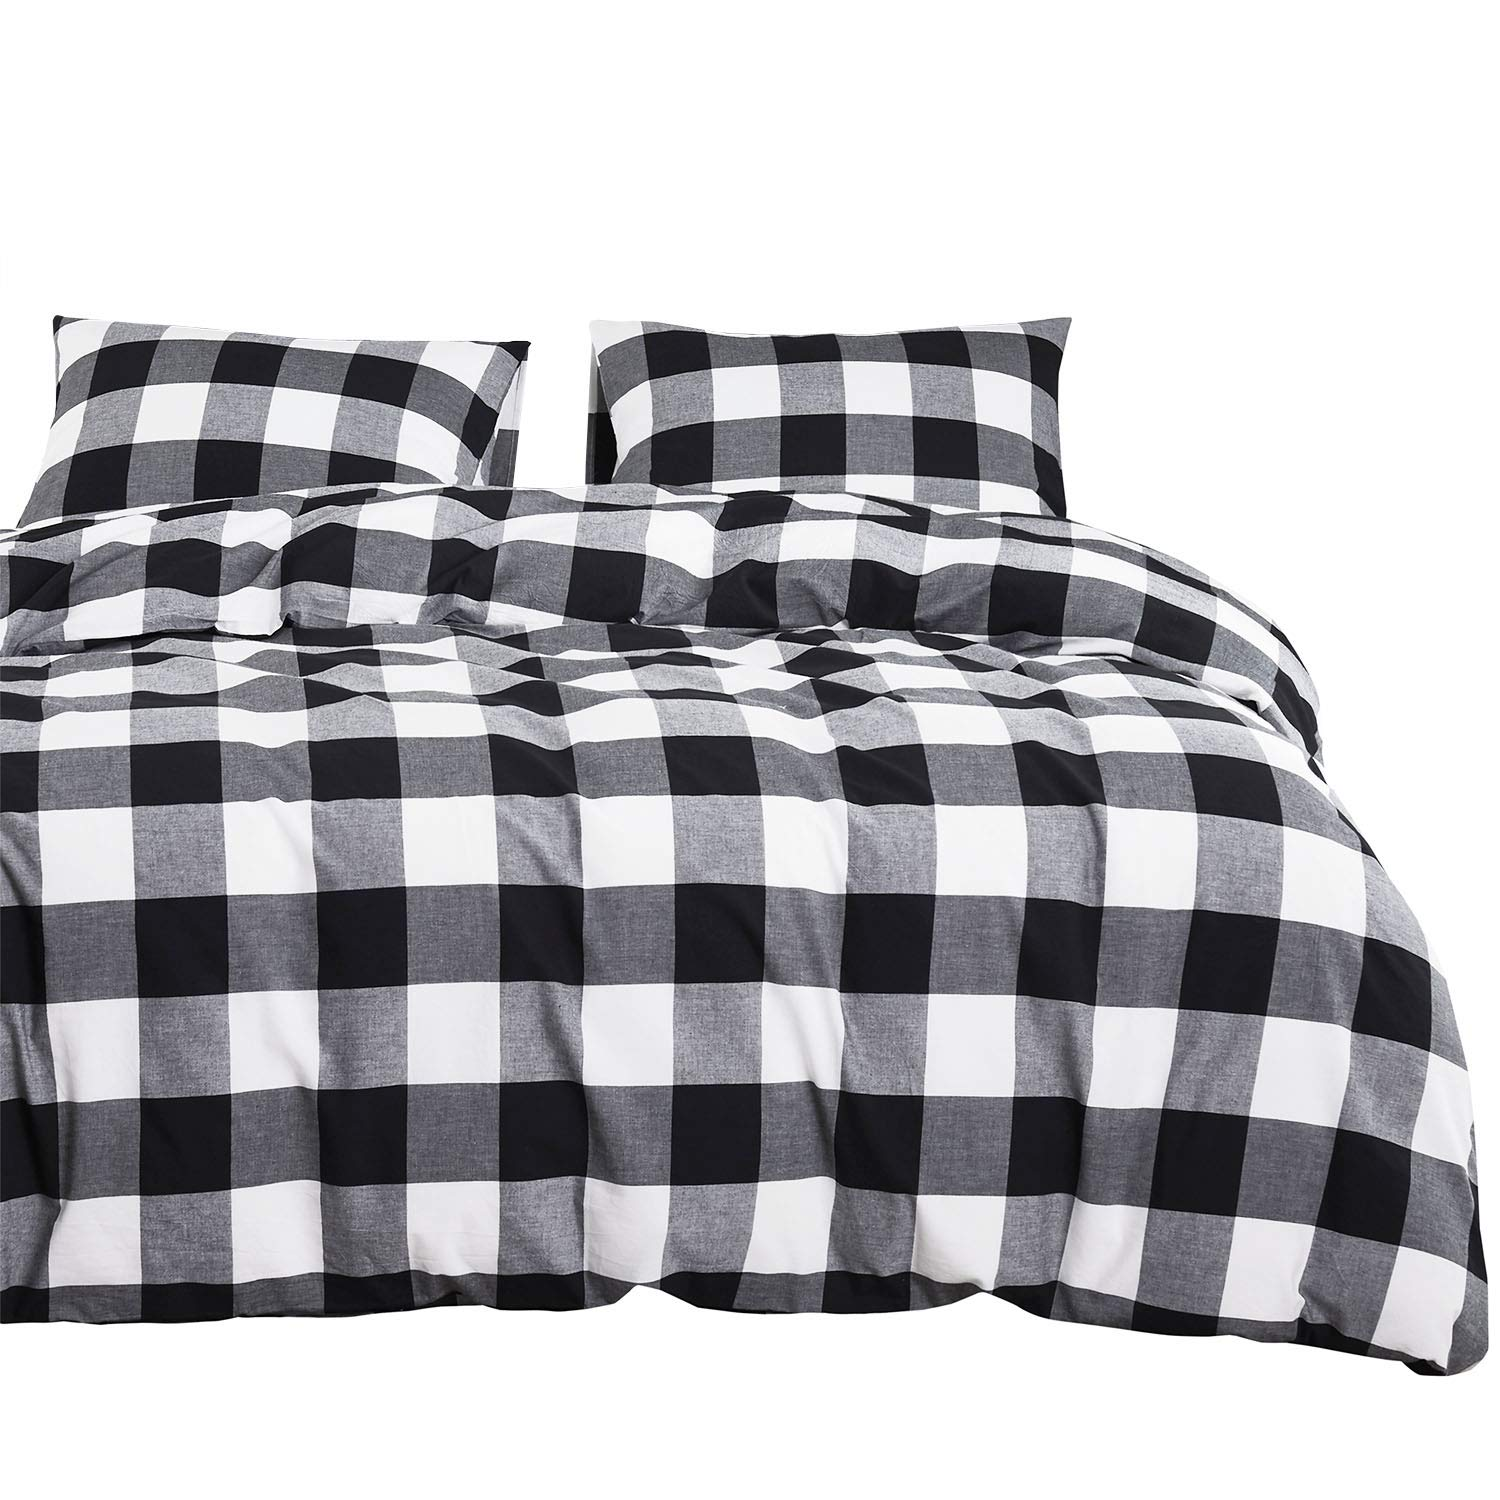 Wake In Cloud - Washed Cotton Duvet Cover Set, Buffalo Check Gingham Plaid Geometric Checker Printed in White Black and Gray, 100% Cotton Bedding, with Zipper Closure (3pcs, Twin Size)